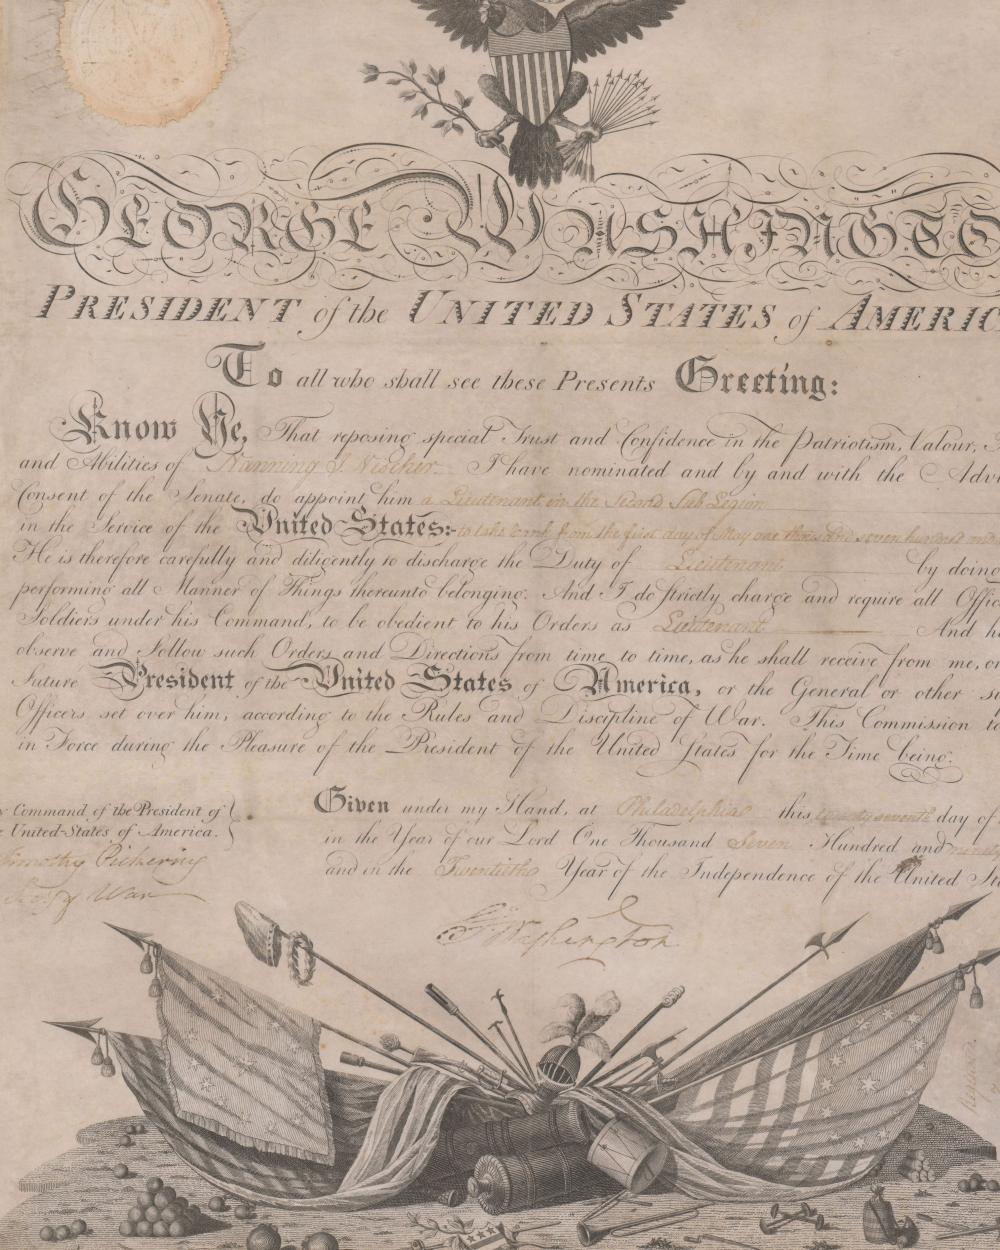 G. Washington Rare Commission For an Indian Fighter alongside W. H. Harrison, and Lewis and Clark in Legion of the United States.